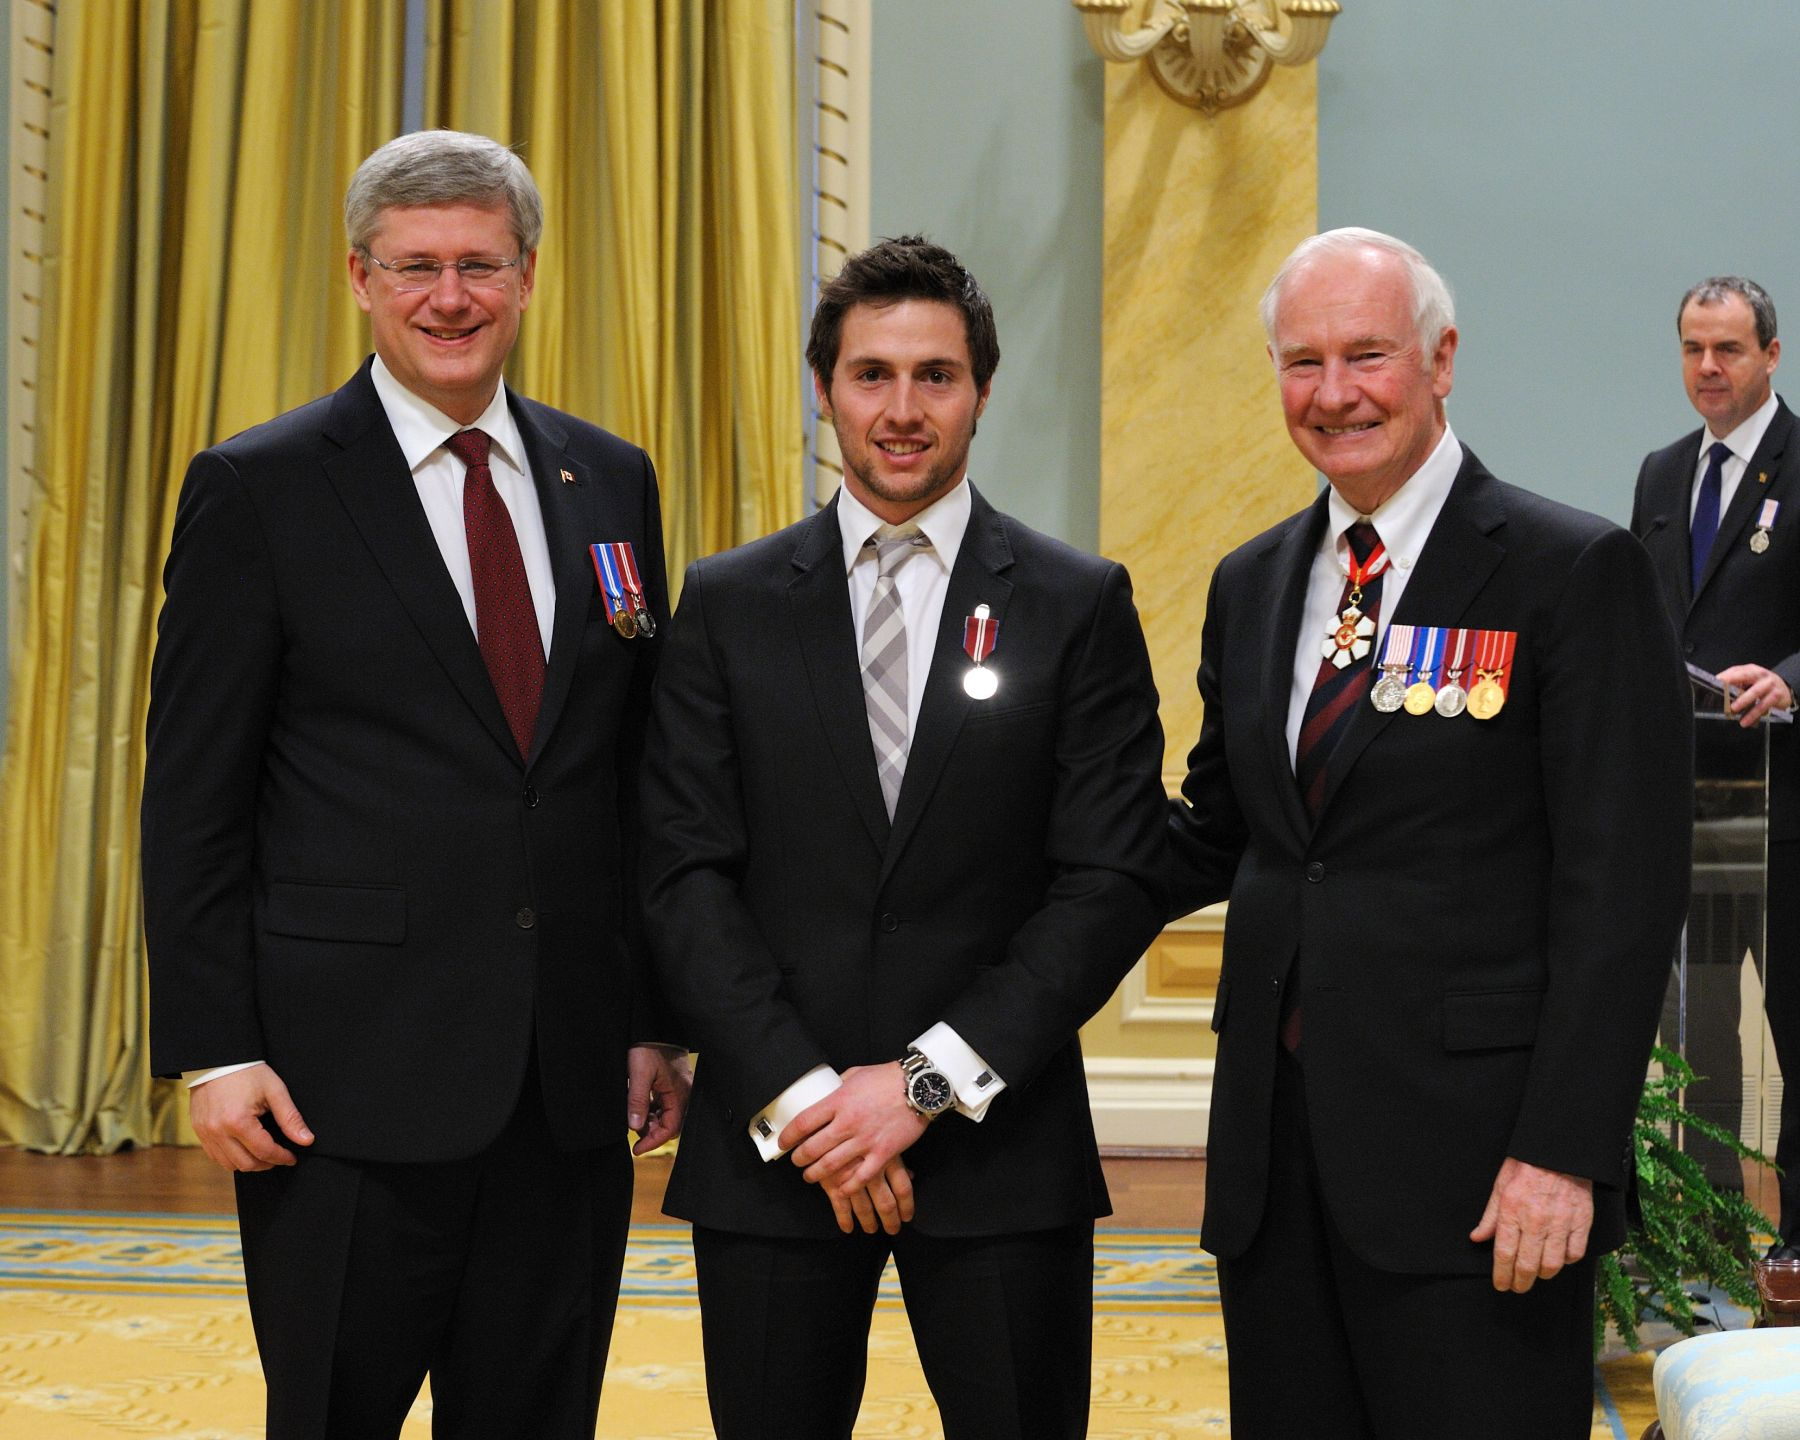 Alexandre Bilodeau (Montréal, Quebec), was recognized for his contributions to sports and for inspiring others to follow their golden dreams.